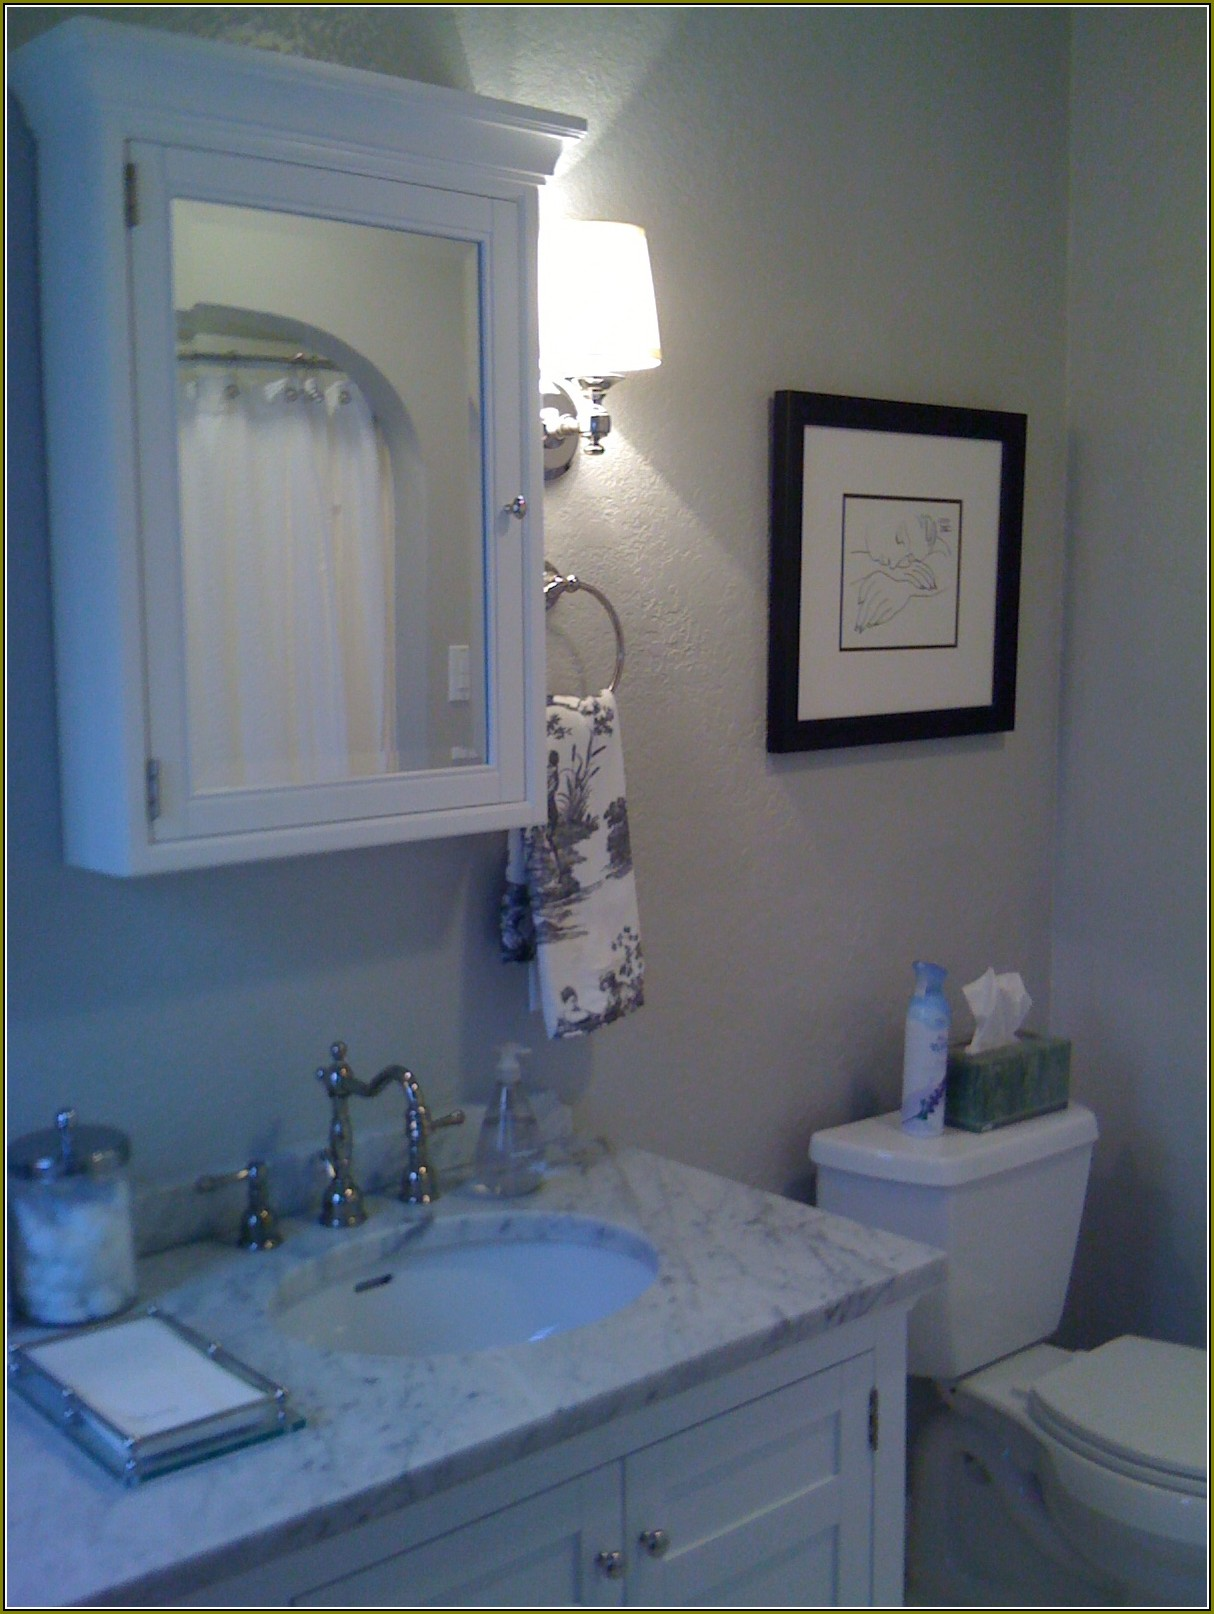 Lowes Medicine Cabinets With Lights on wall plus sink with marble countertop plus silver faucet